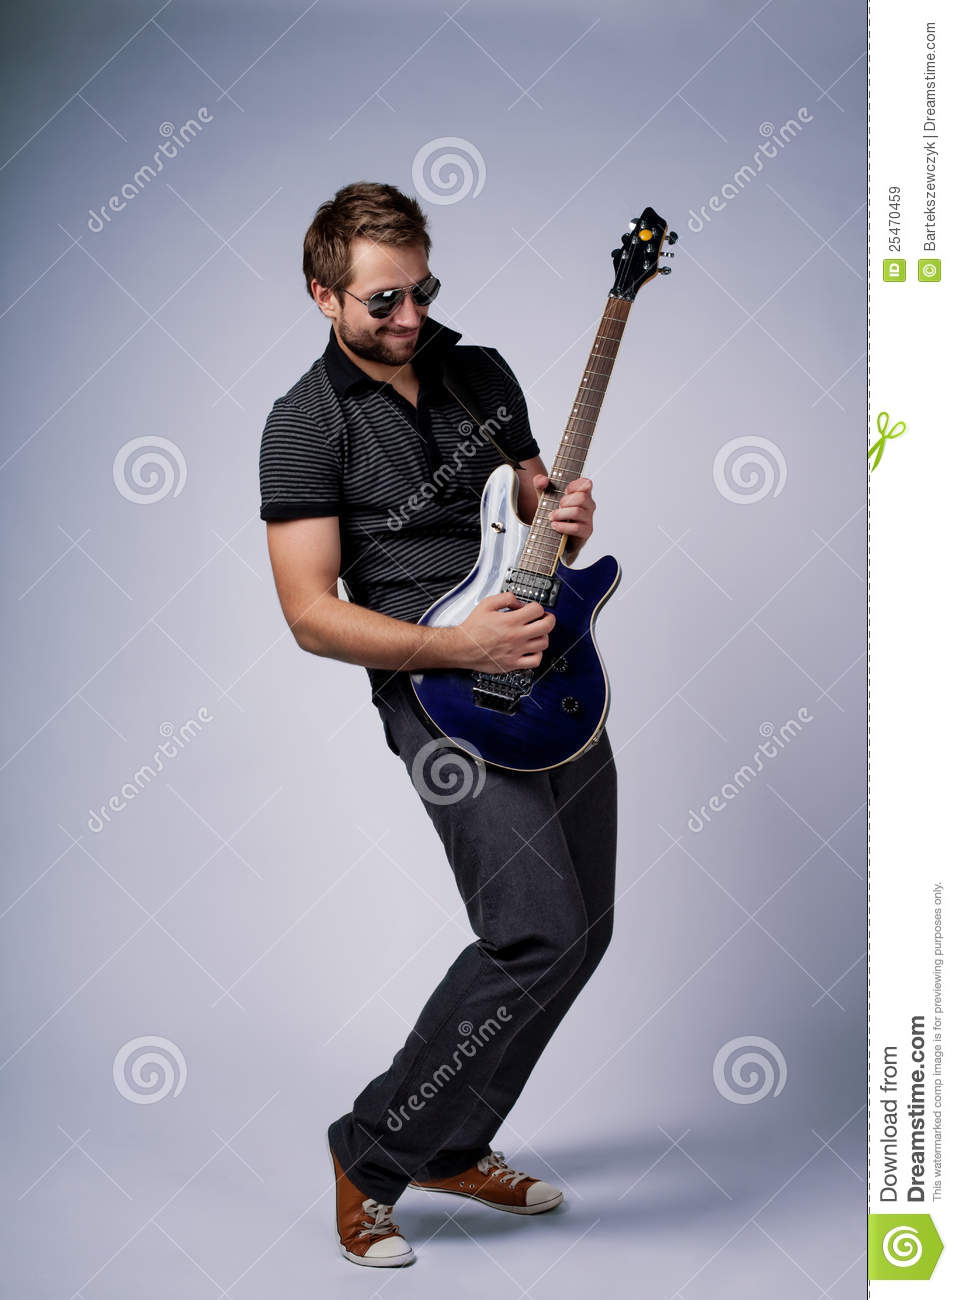 Royalty Free Stock Images Rockstar Guitar Player Image25470459 moreover LocationPhotoDirectLink G186337 D999329 I113756320 Anfield Stadium Liverpool Merseyside England furthermore Default besides Torque Limiting Impact Extensions in addition Experiments Van De Graaff Generator. on electric field map